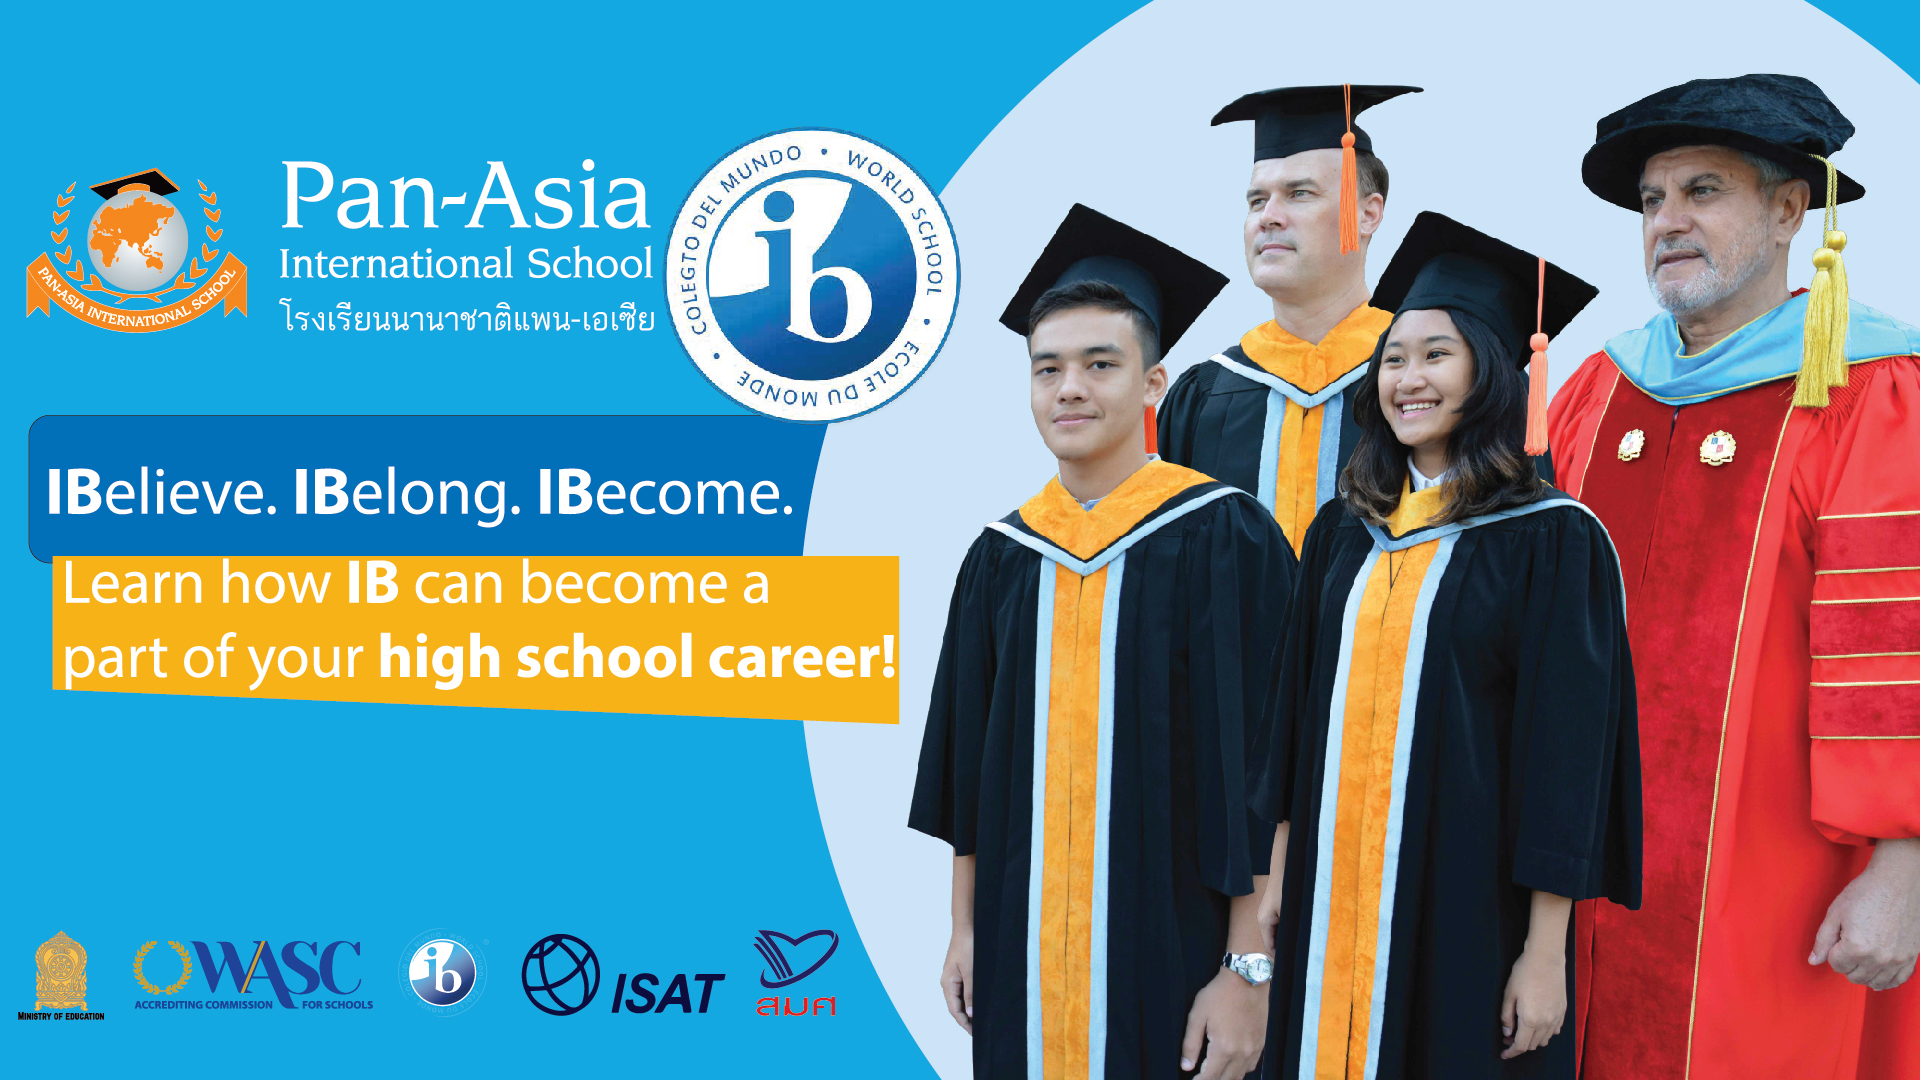 Pan Asia International School Ib Program